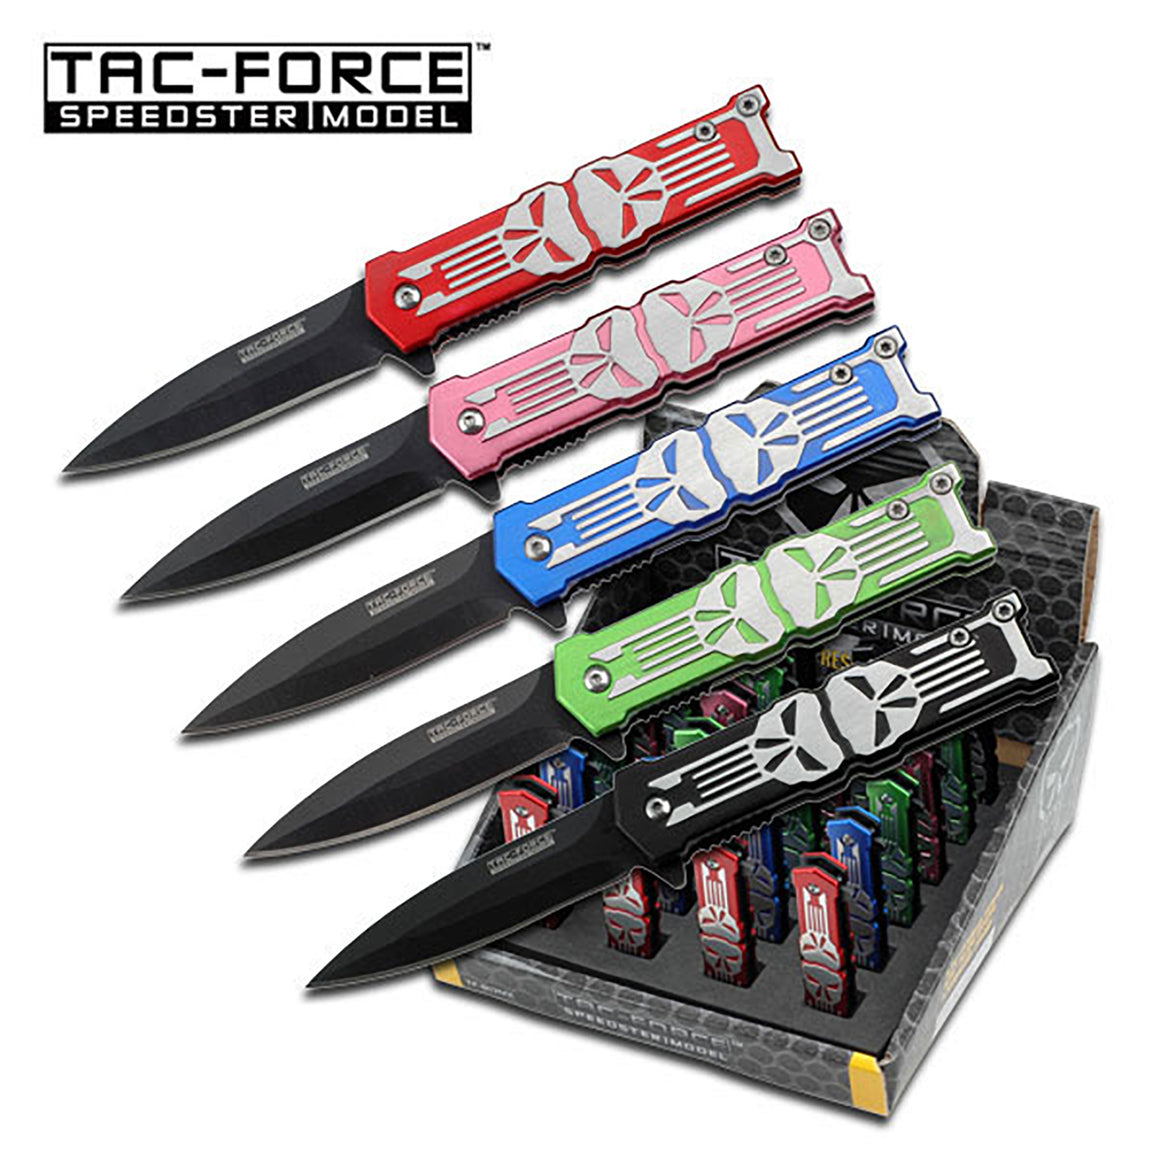 Tac-Force TF-802MX Spring Assisted Knife